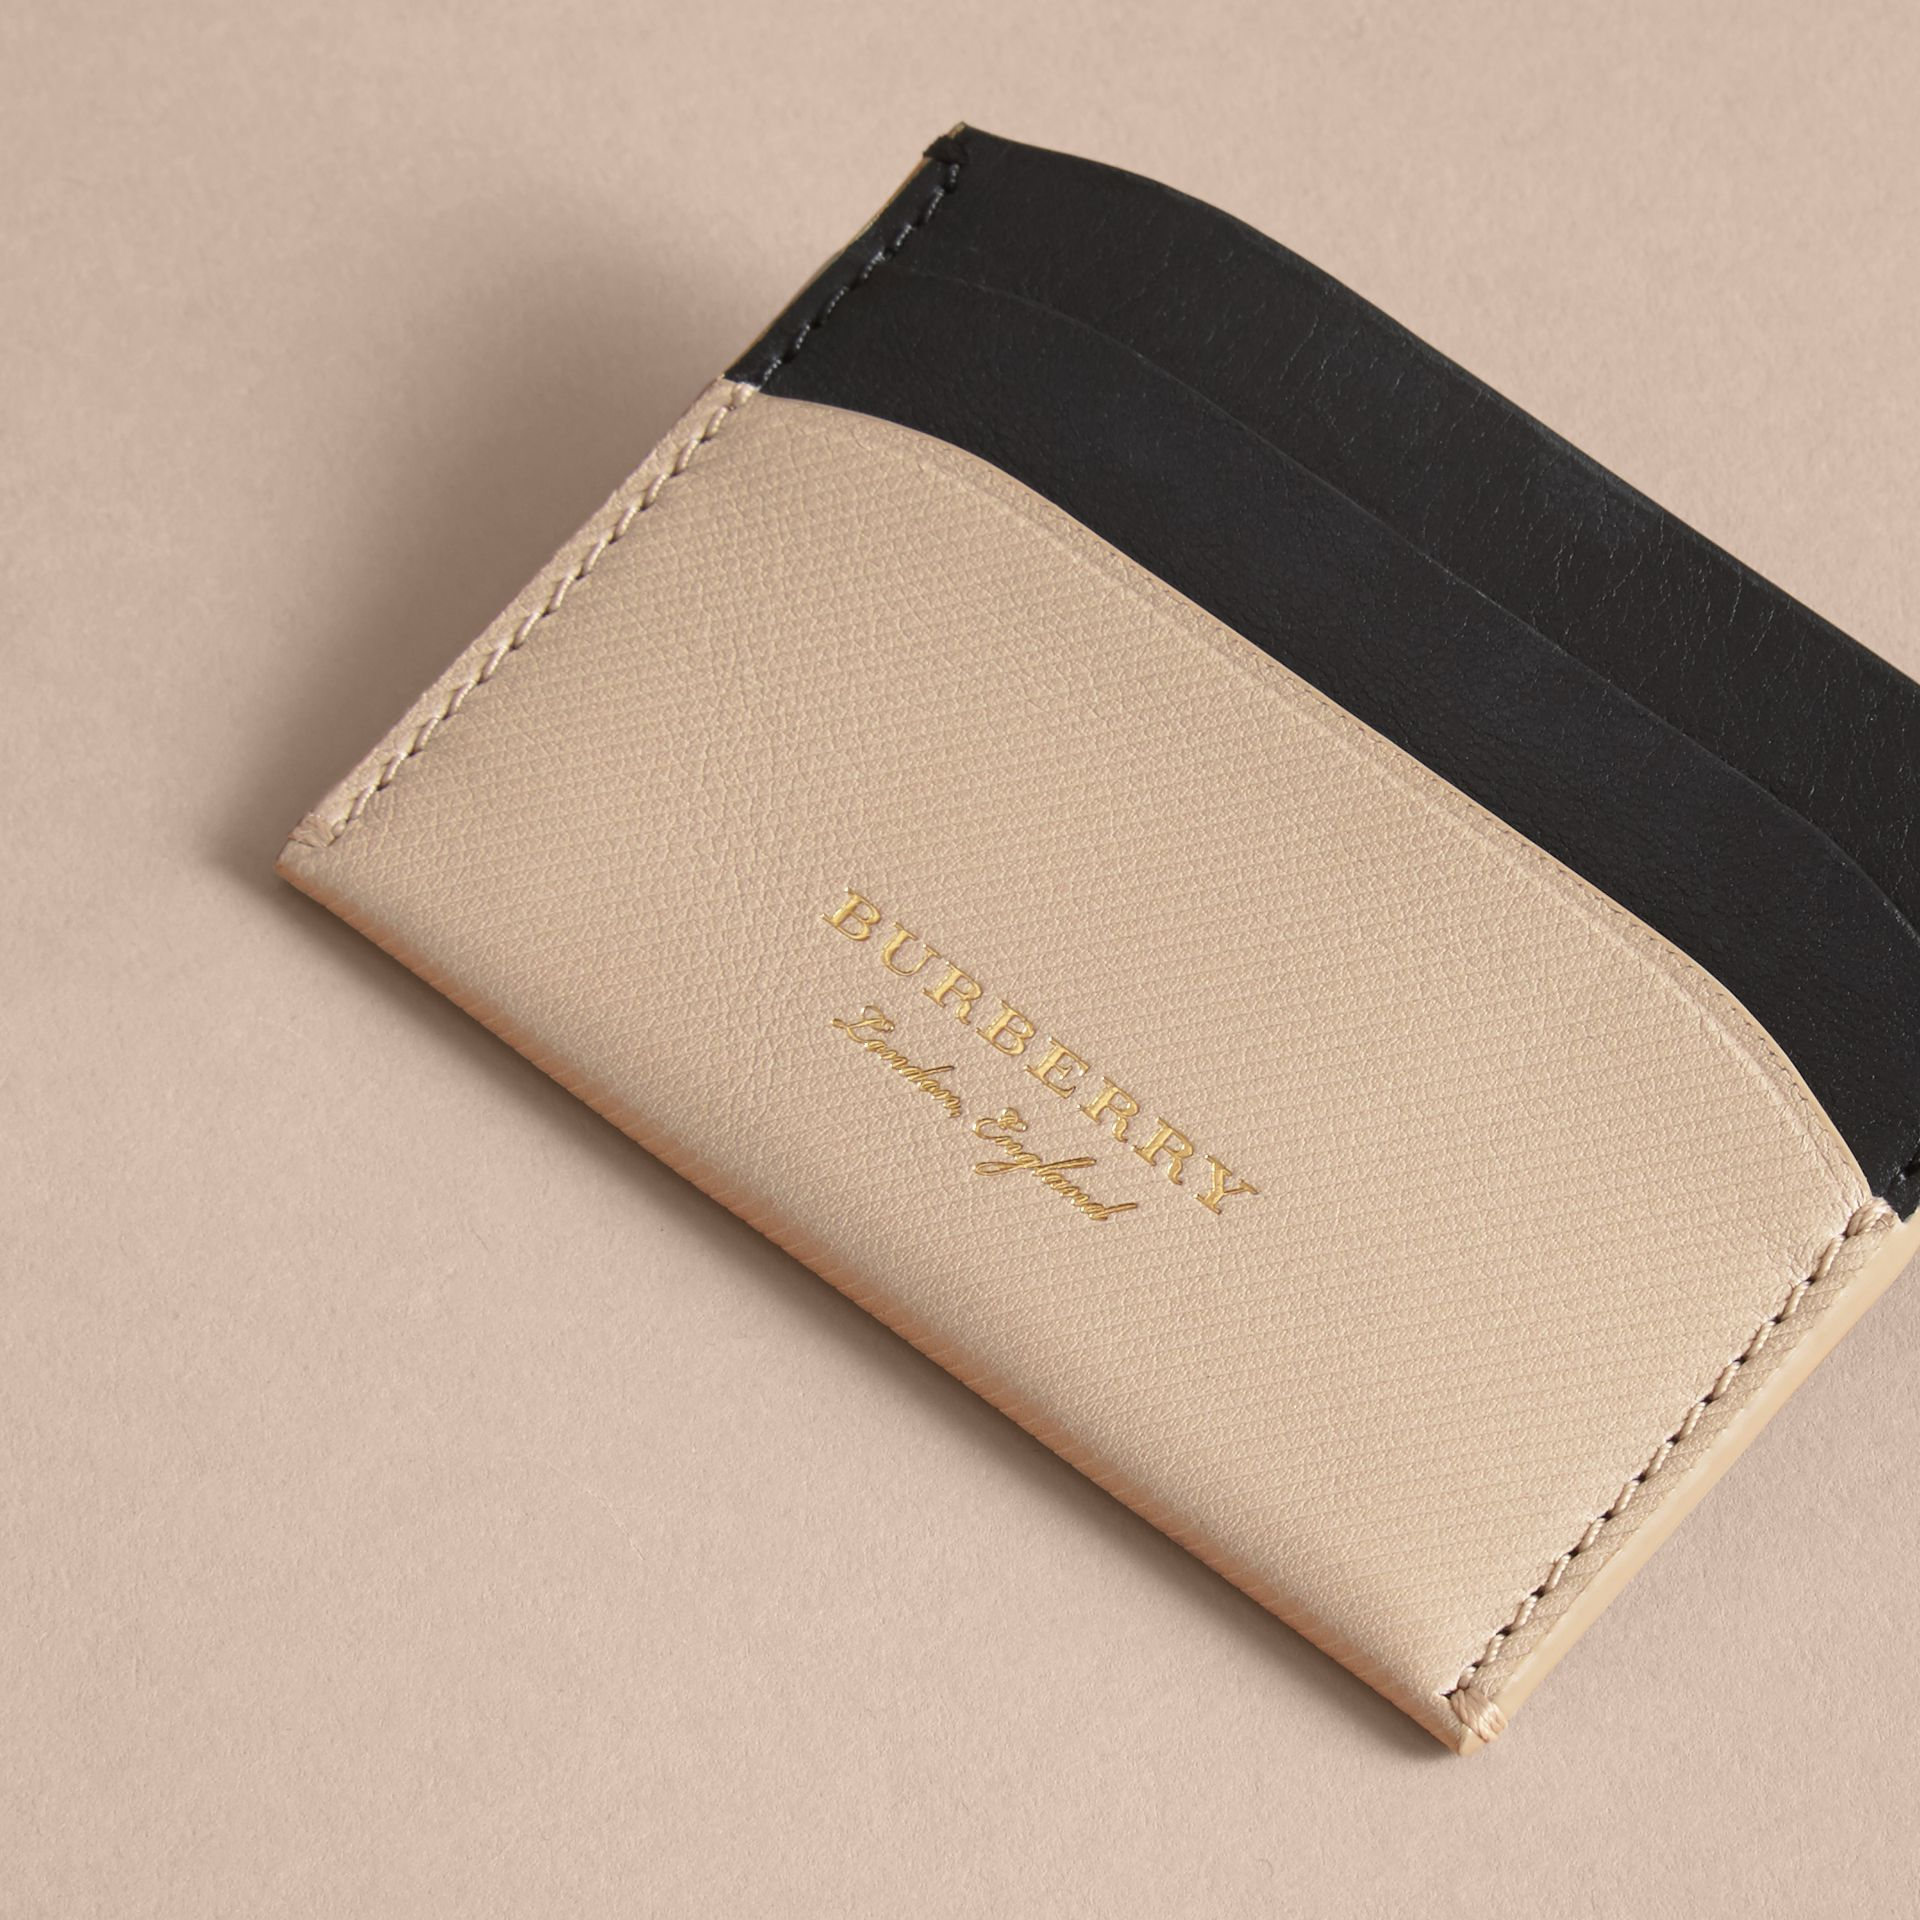 Two-tone Trench Leather Card Case in Limestone/ Black - Women | Burberry Australia - gallery image 2